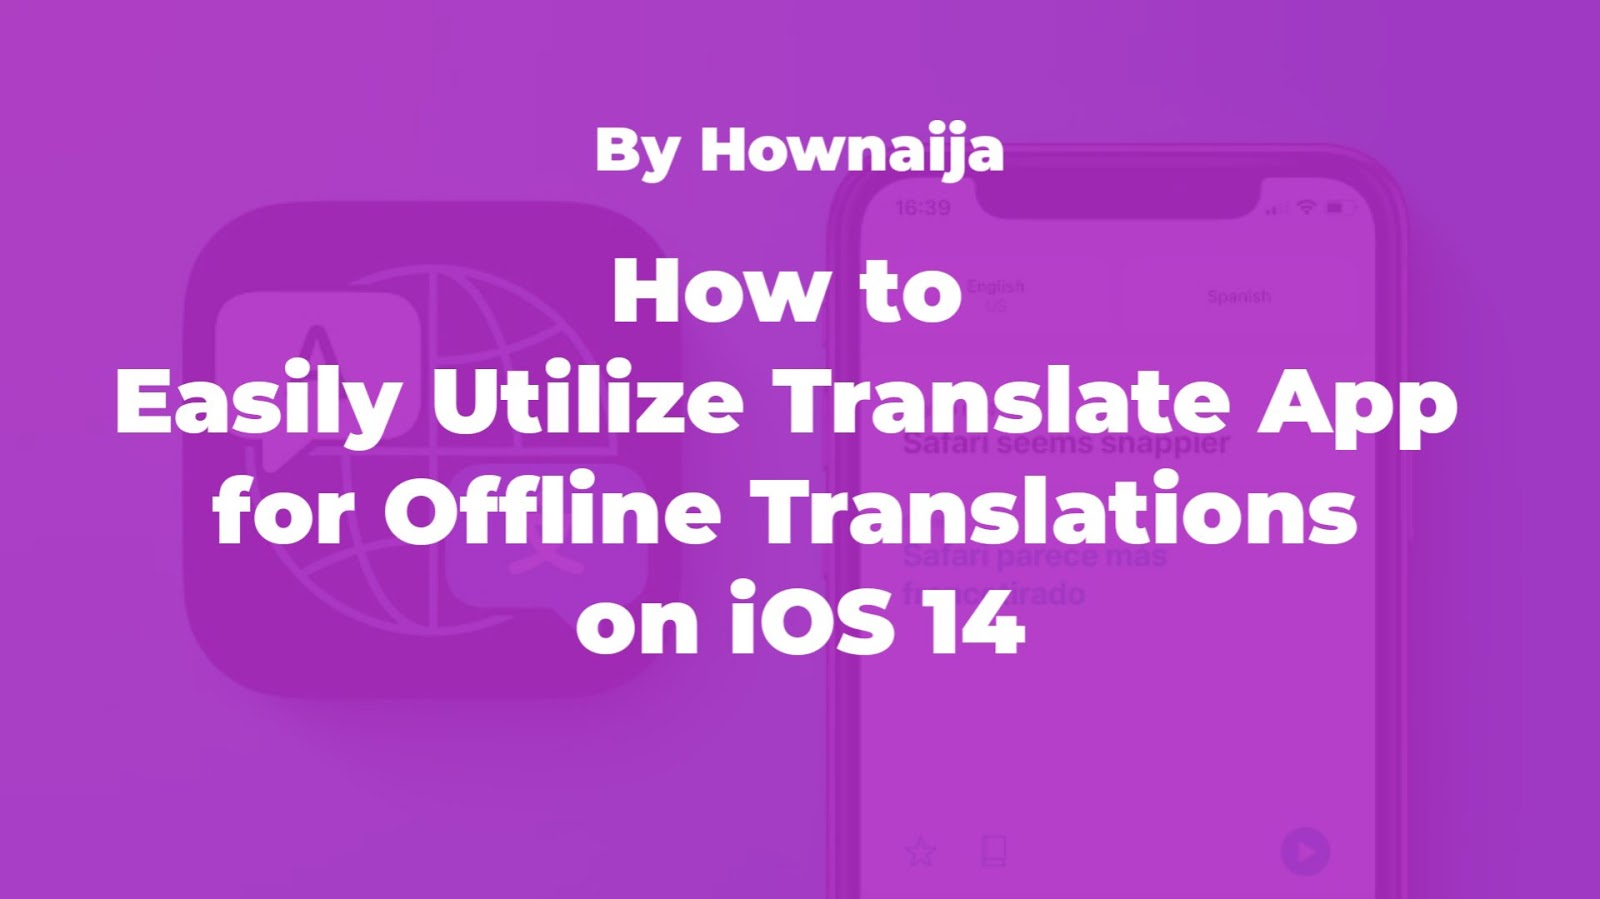 How to Easily Utilize Translate App for Offline Translations on iOS 14